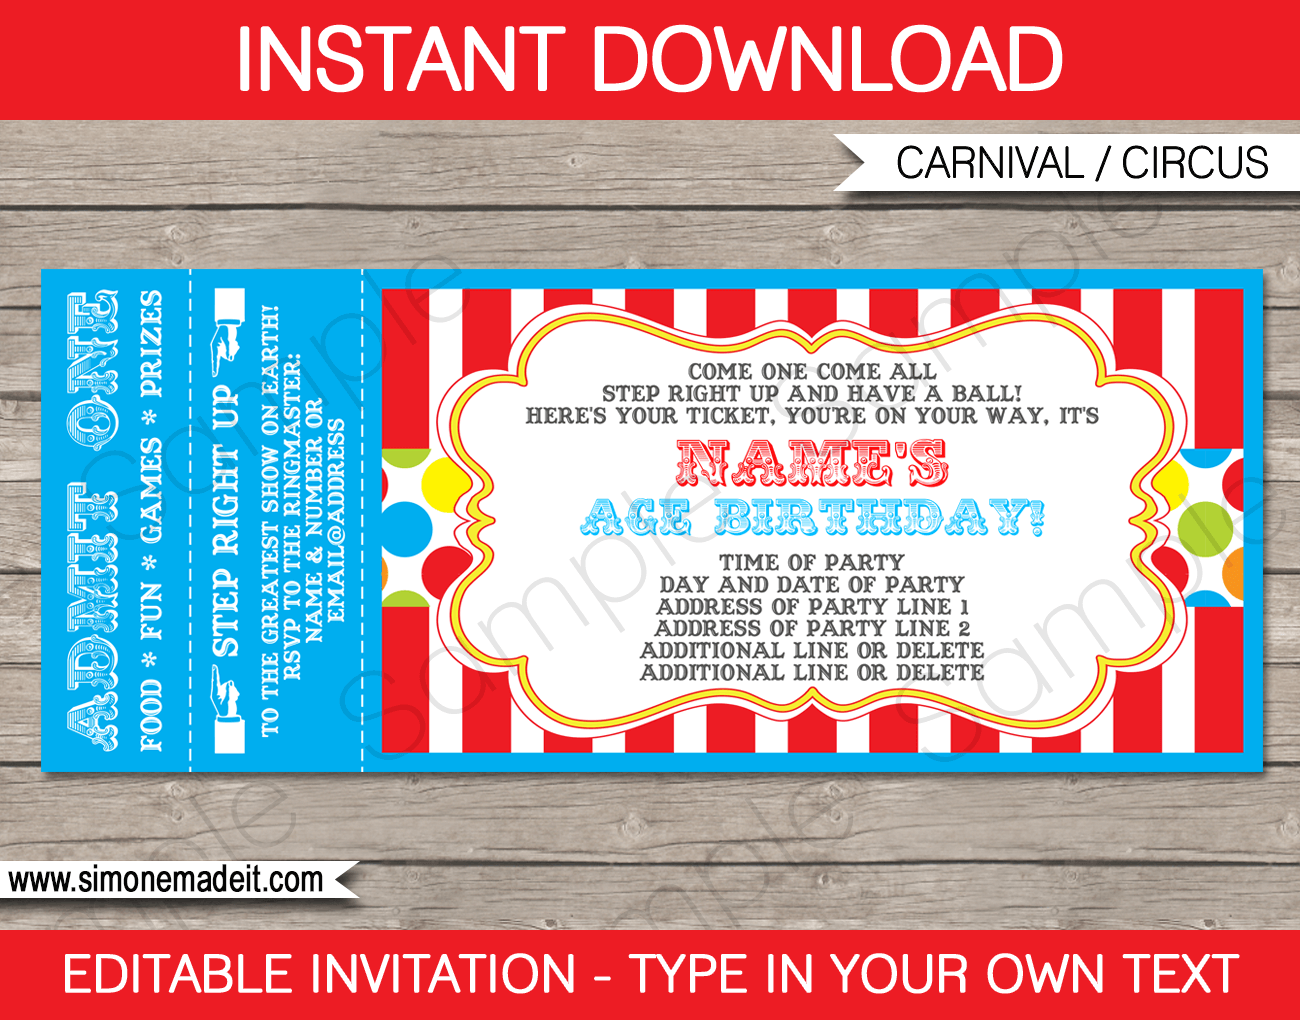 Marvelous Carnival Party Ticket Invitation Template | Carnival Party | Circus Party |  Editable And Printable | Regard To Free Printable Ticket Style Invitations